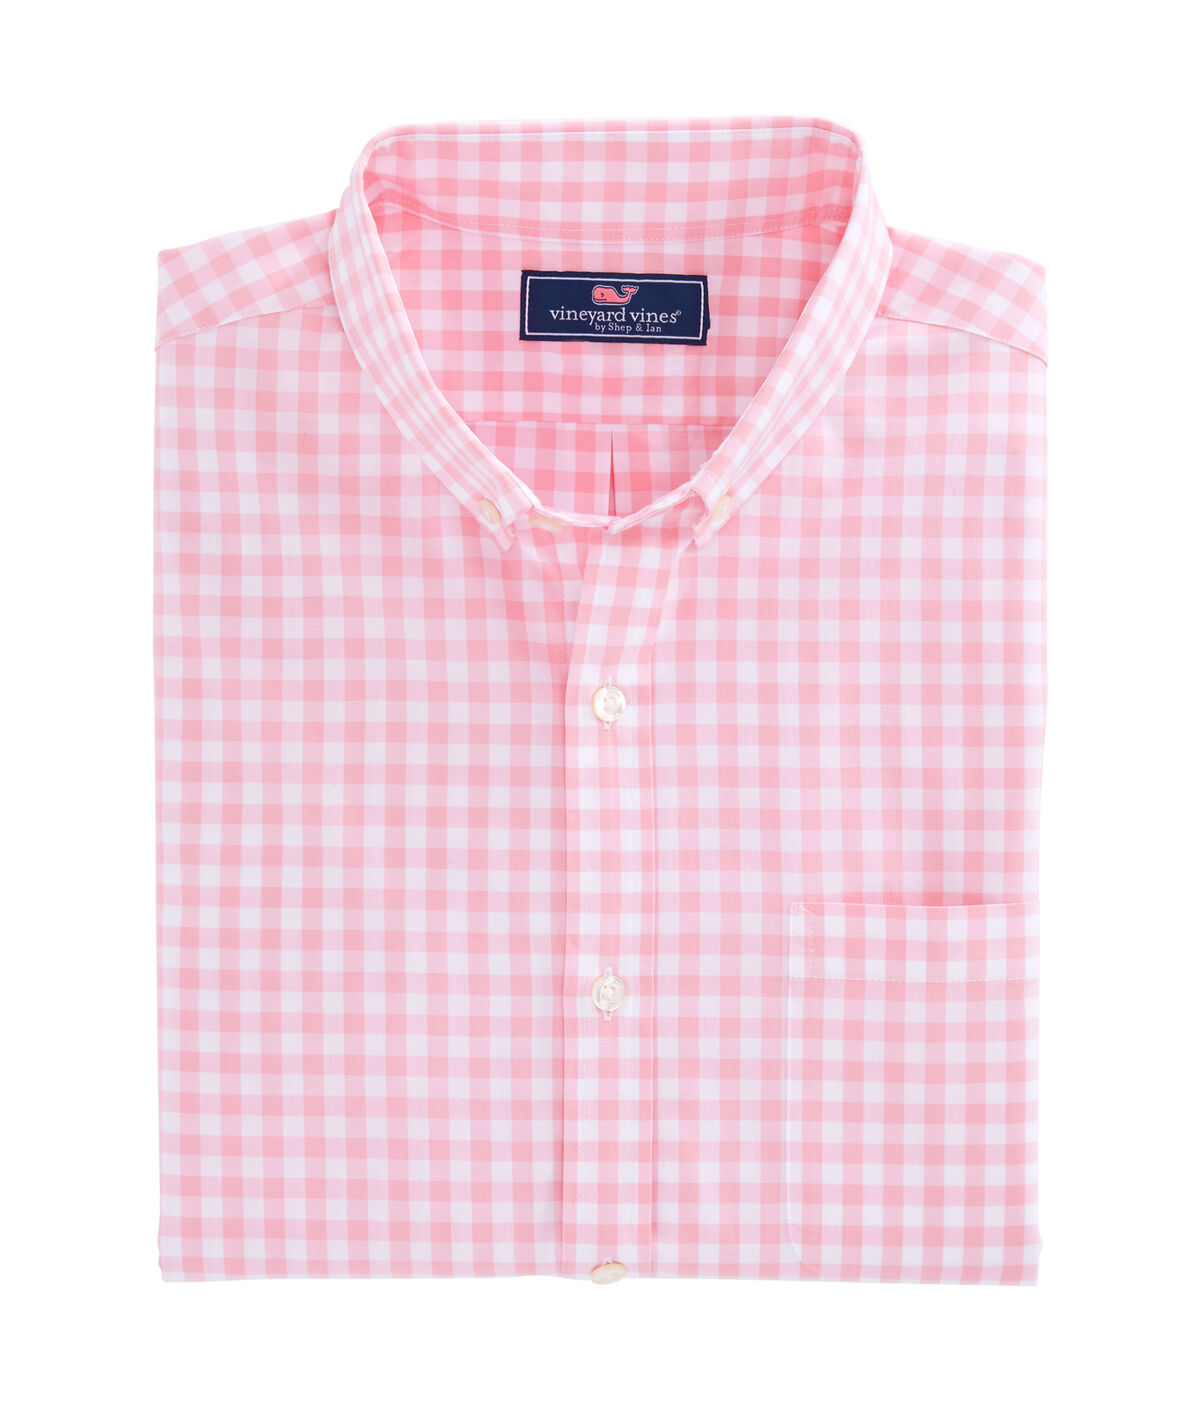 Description of Pink Gingham for screen readers